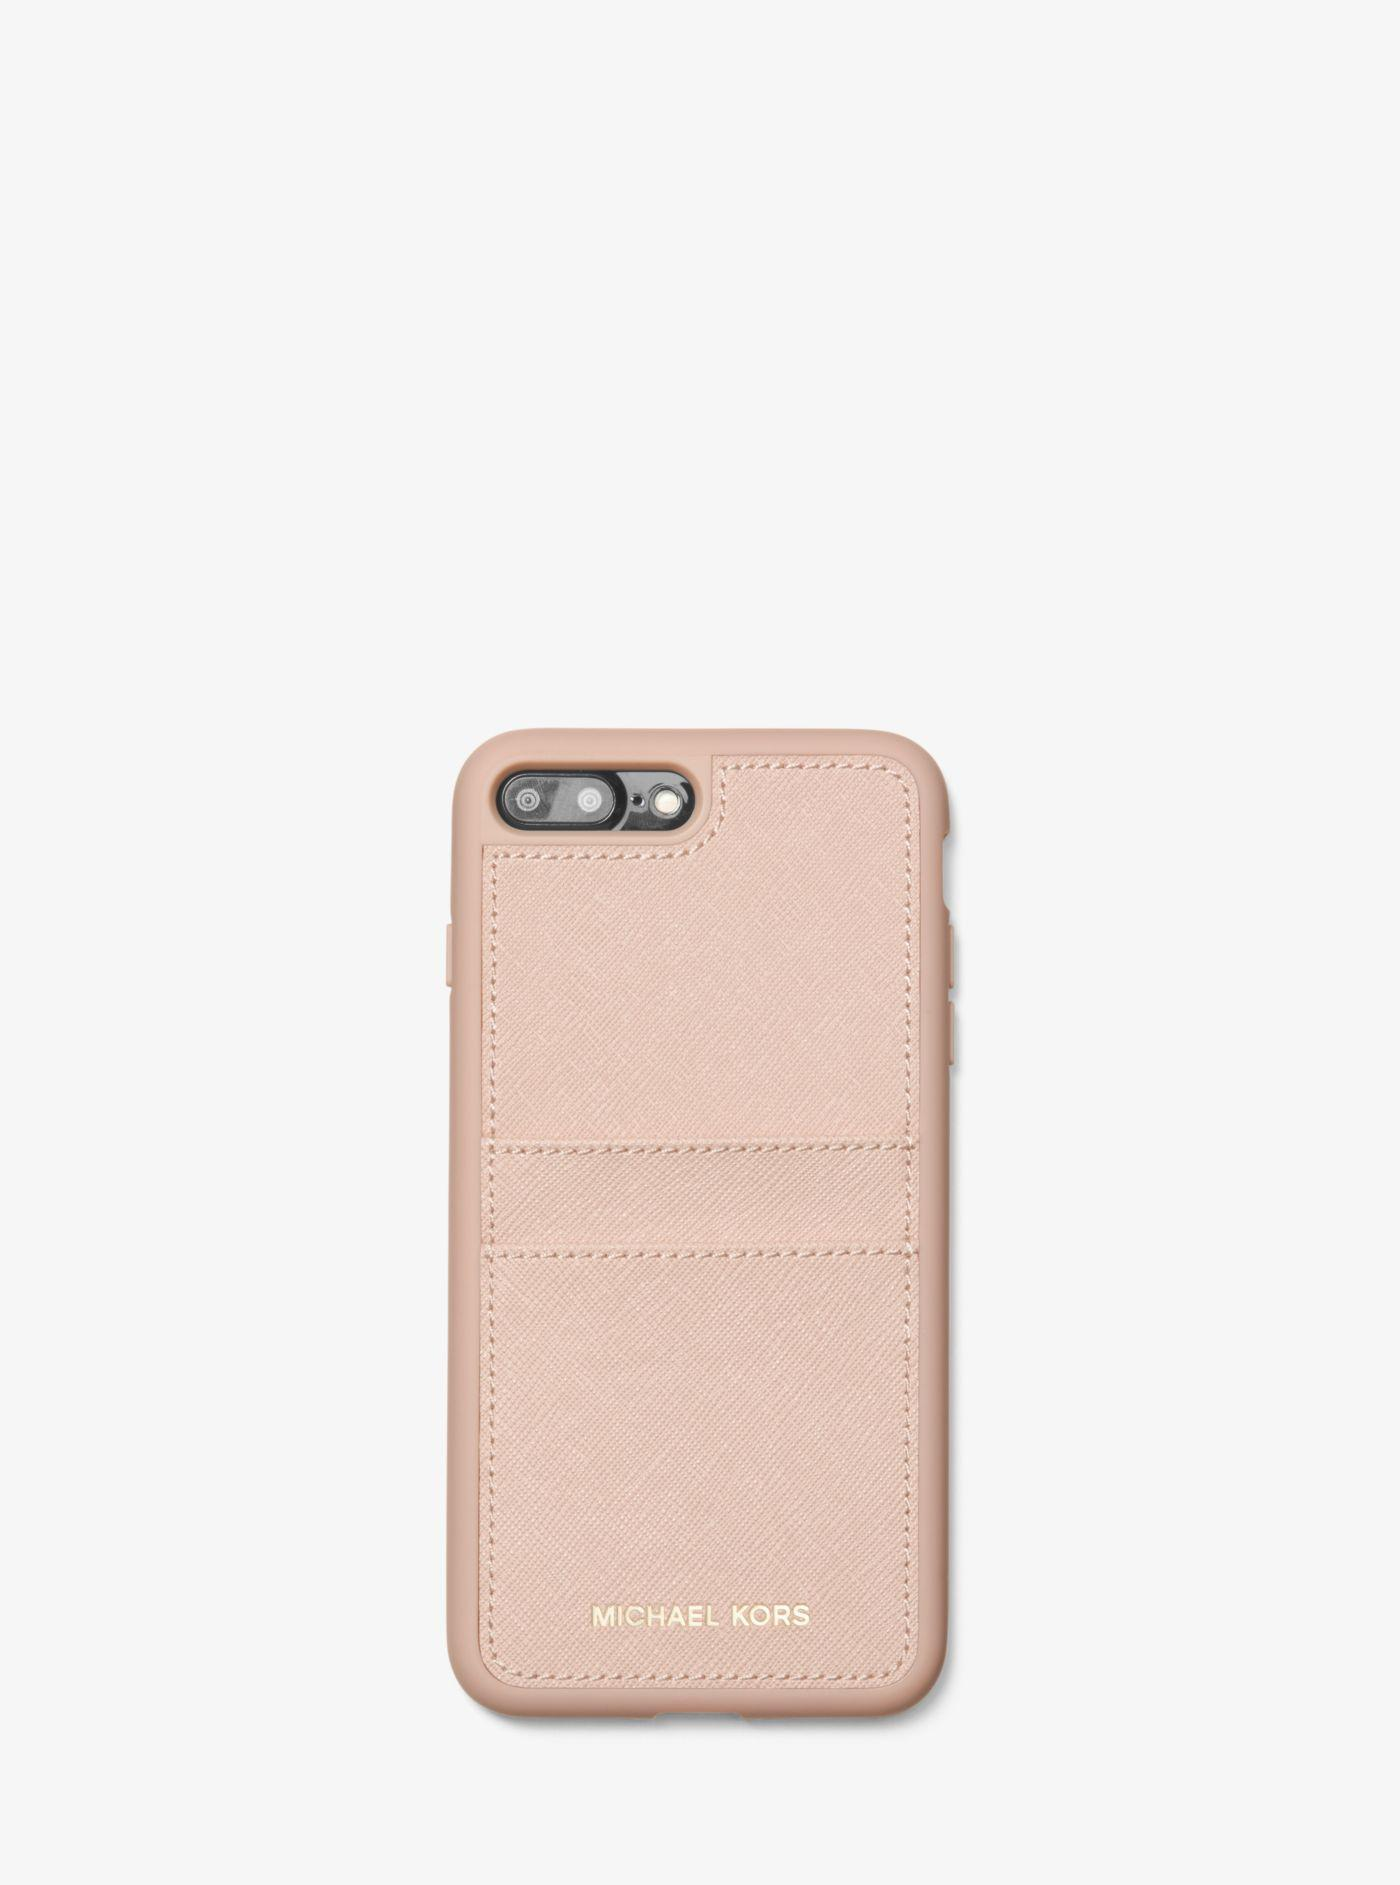 timeless design e6b5b 349a8 Michael Kors Pink Saffiano Leather Case For Iphone 7/8 Plus